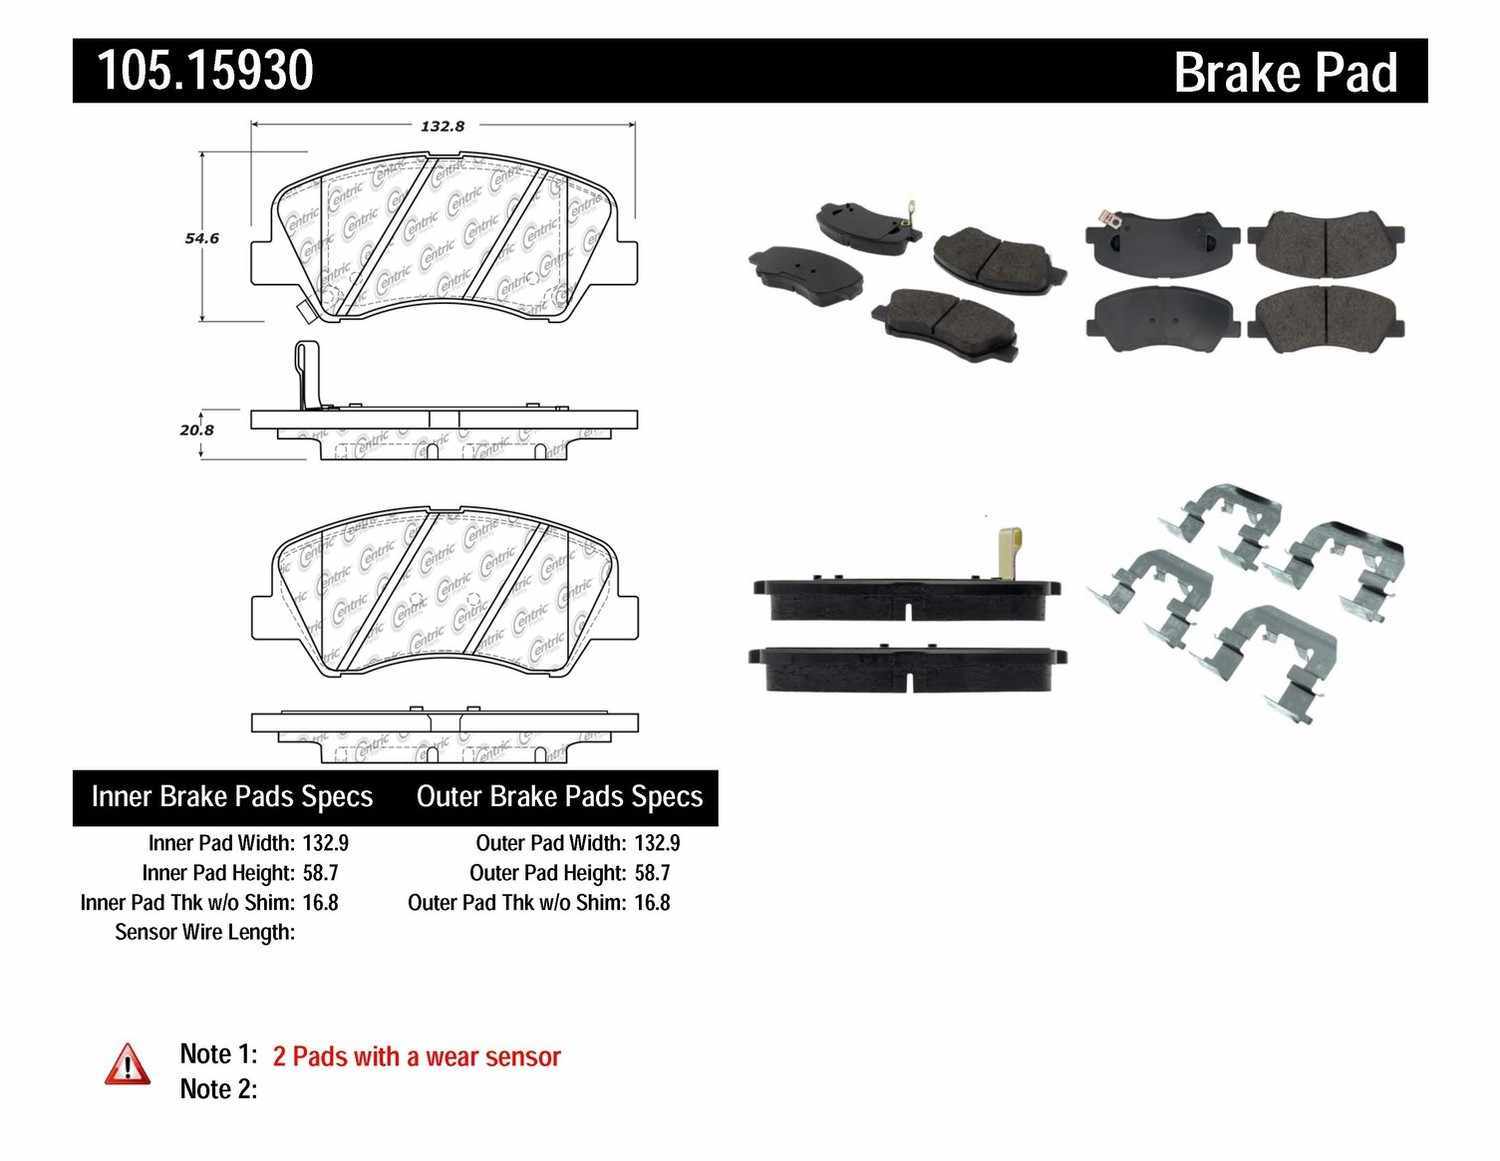 Centric Parts Posi Quiet Ceramic Disc Brake Pad W Shims Hardware Preferred Front Part Number 105 15930 Bma Auto Parts Bmaparts Com